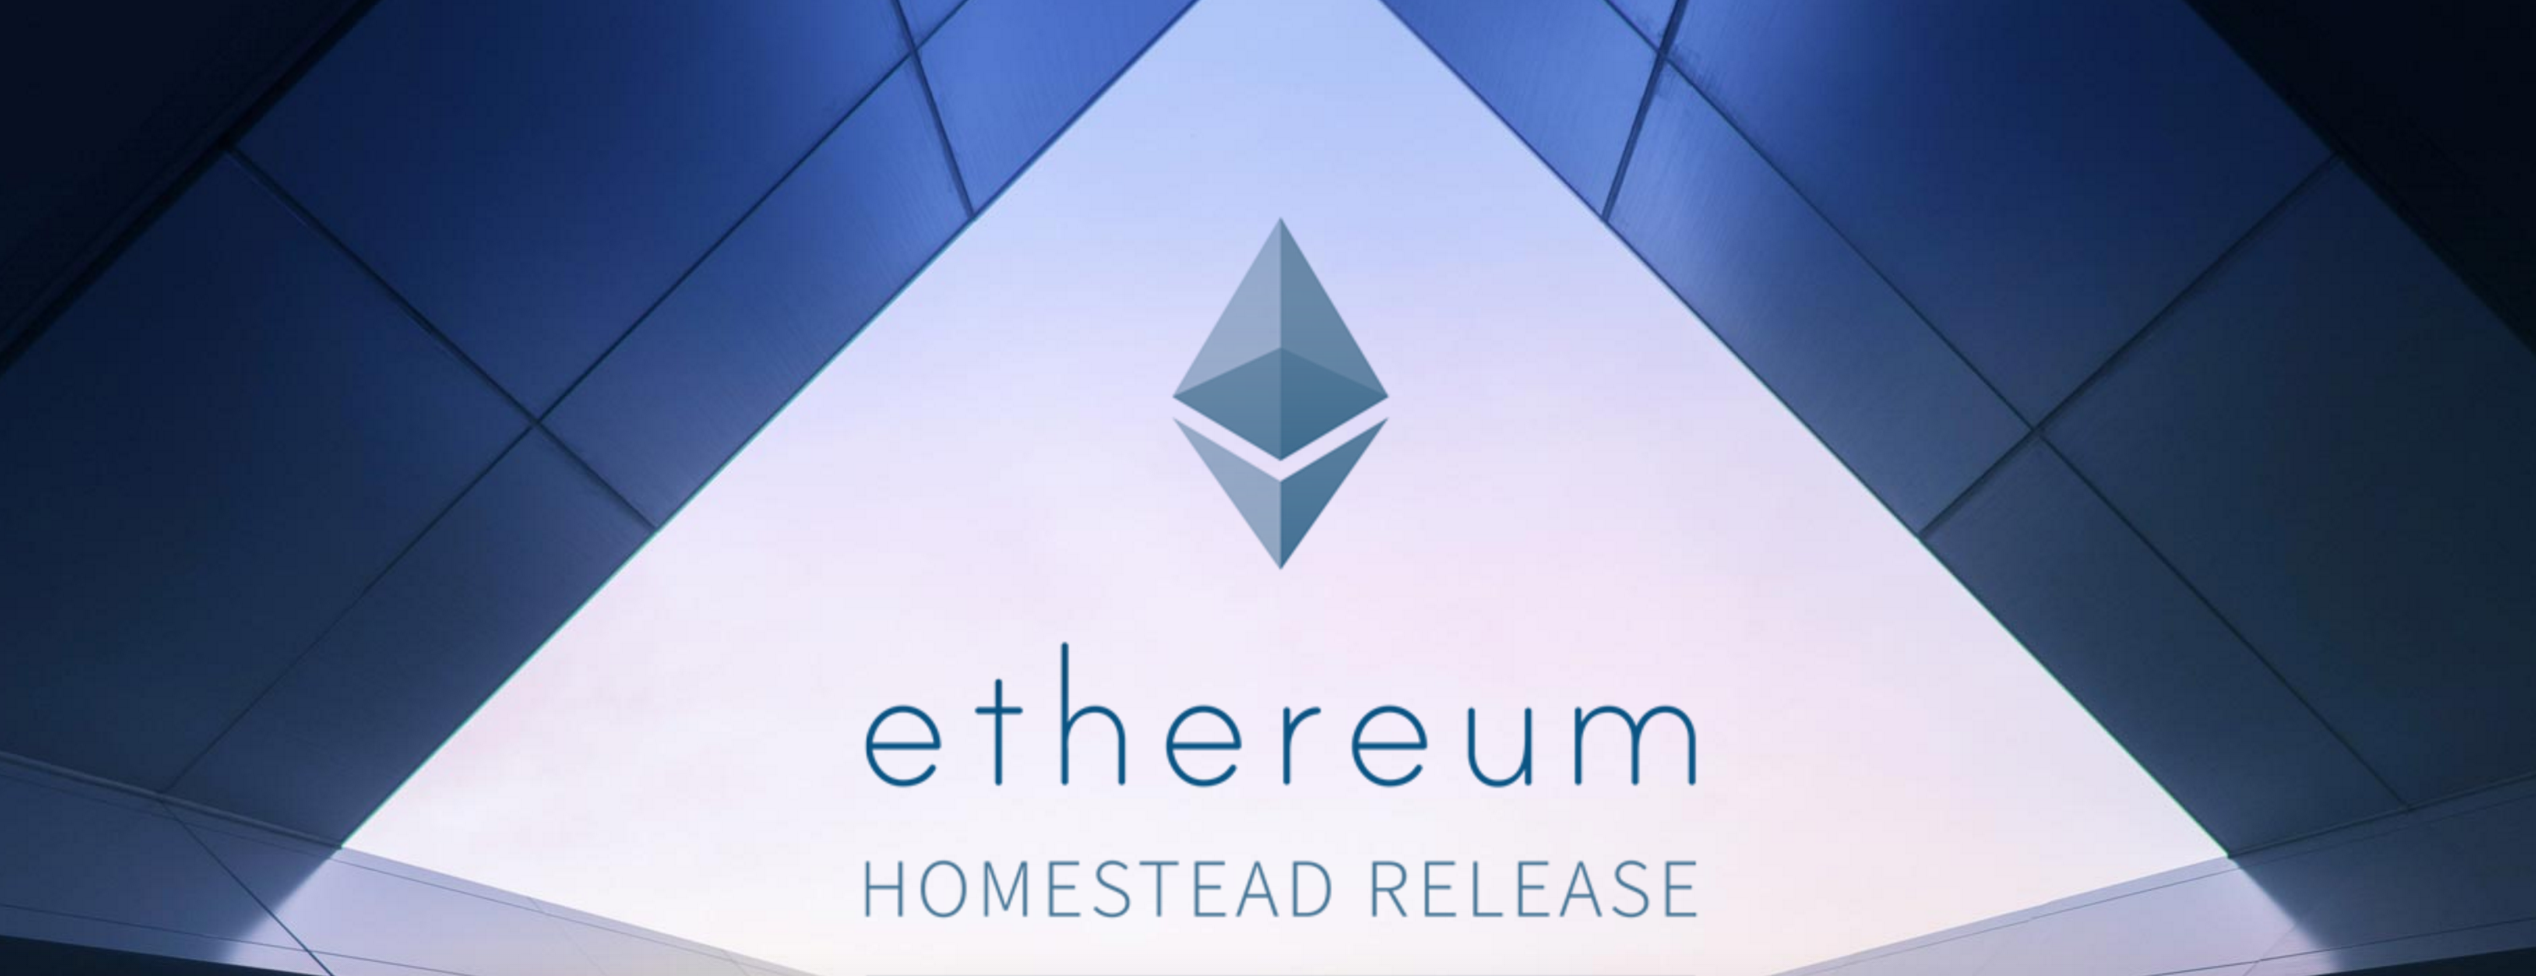 ethereum Homestead